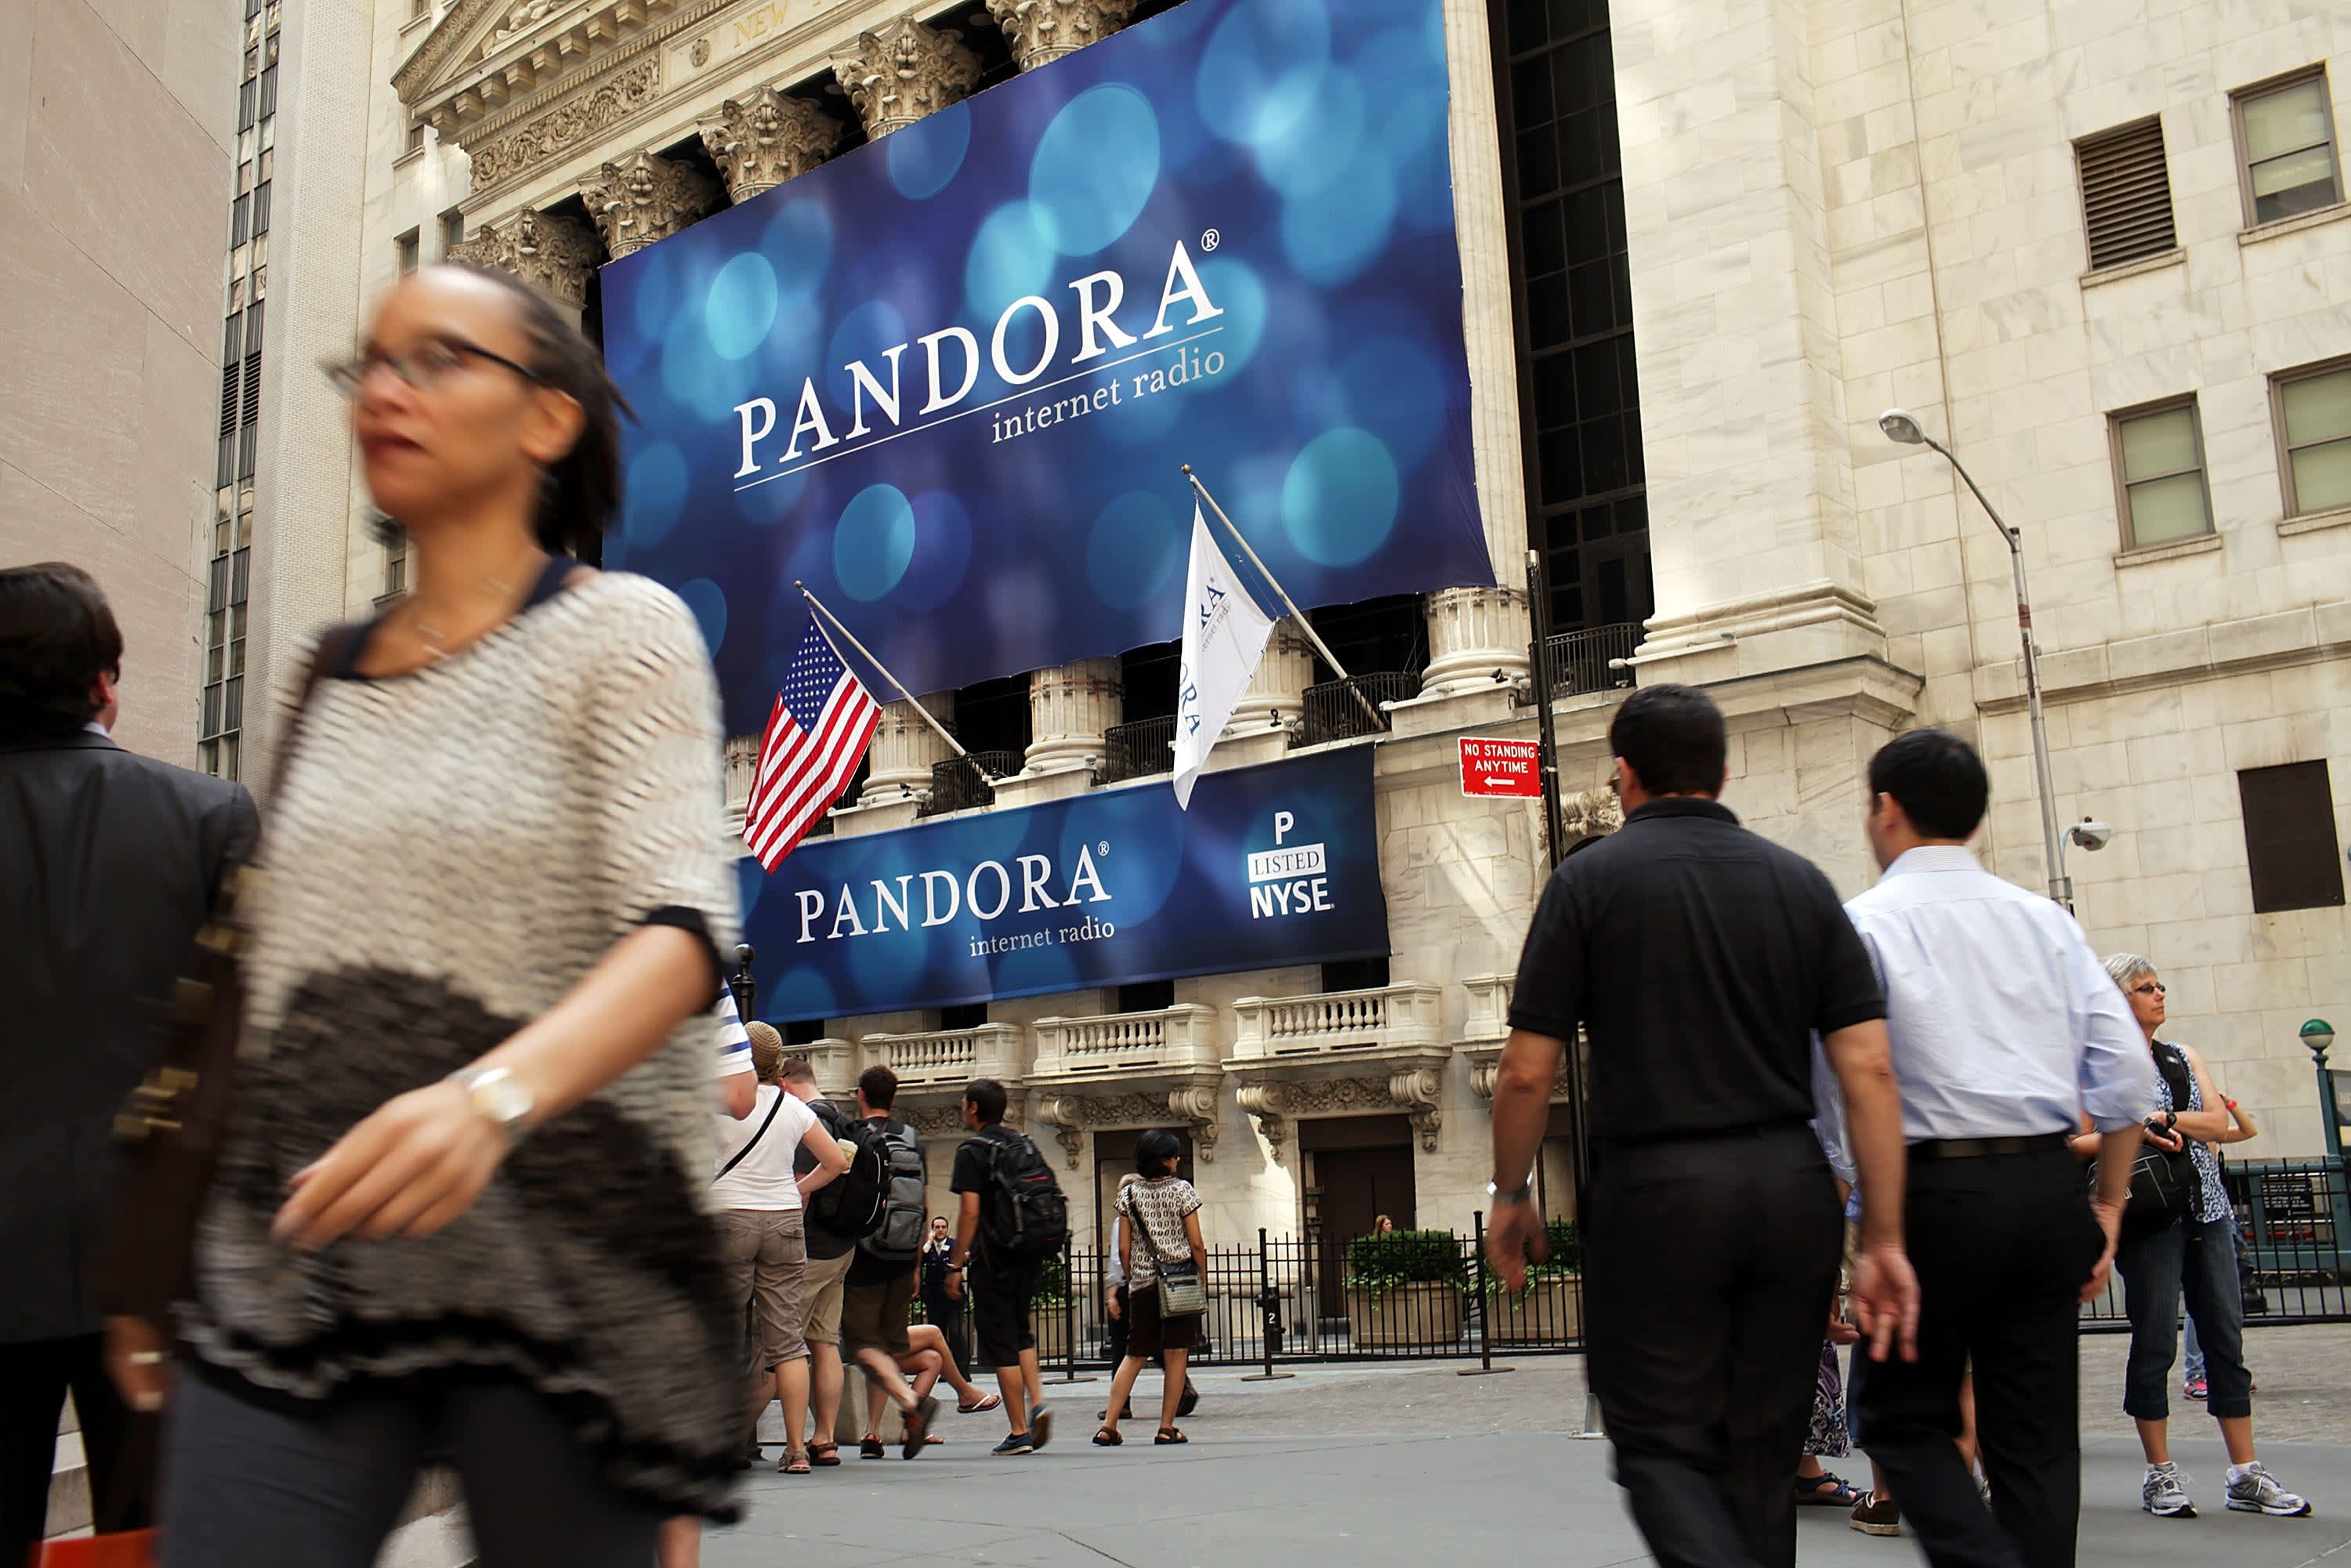 SiriusXM to buy Pandora in all-stock deal valued at $3 5 billion